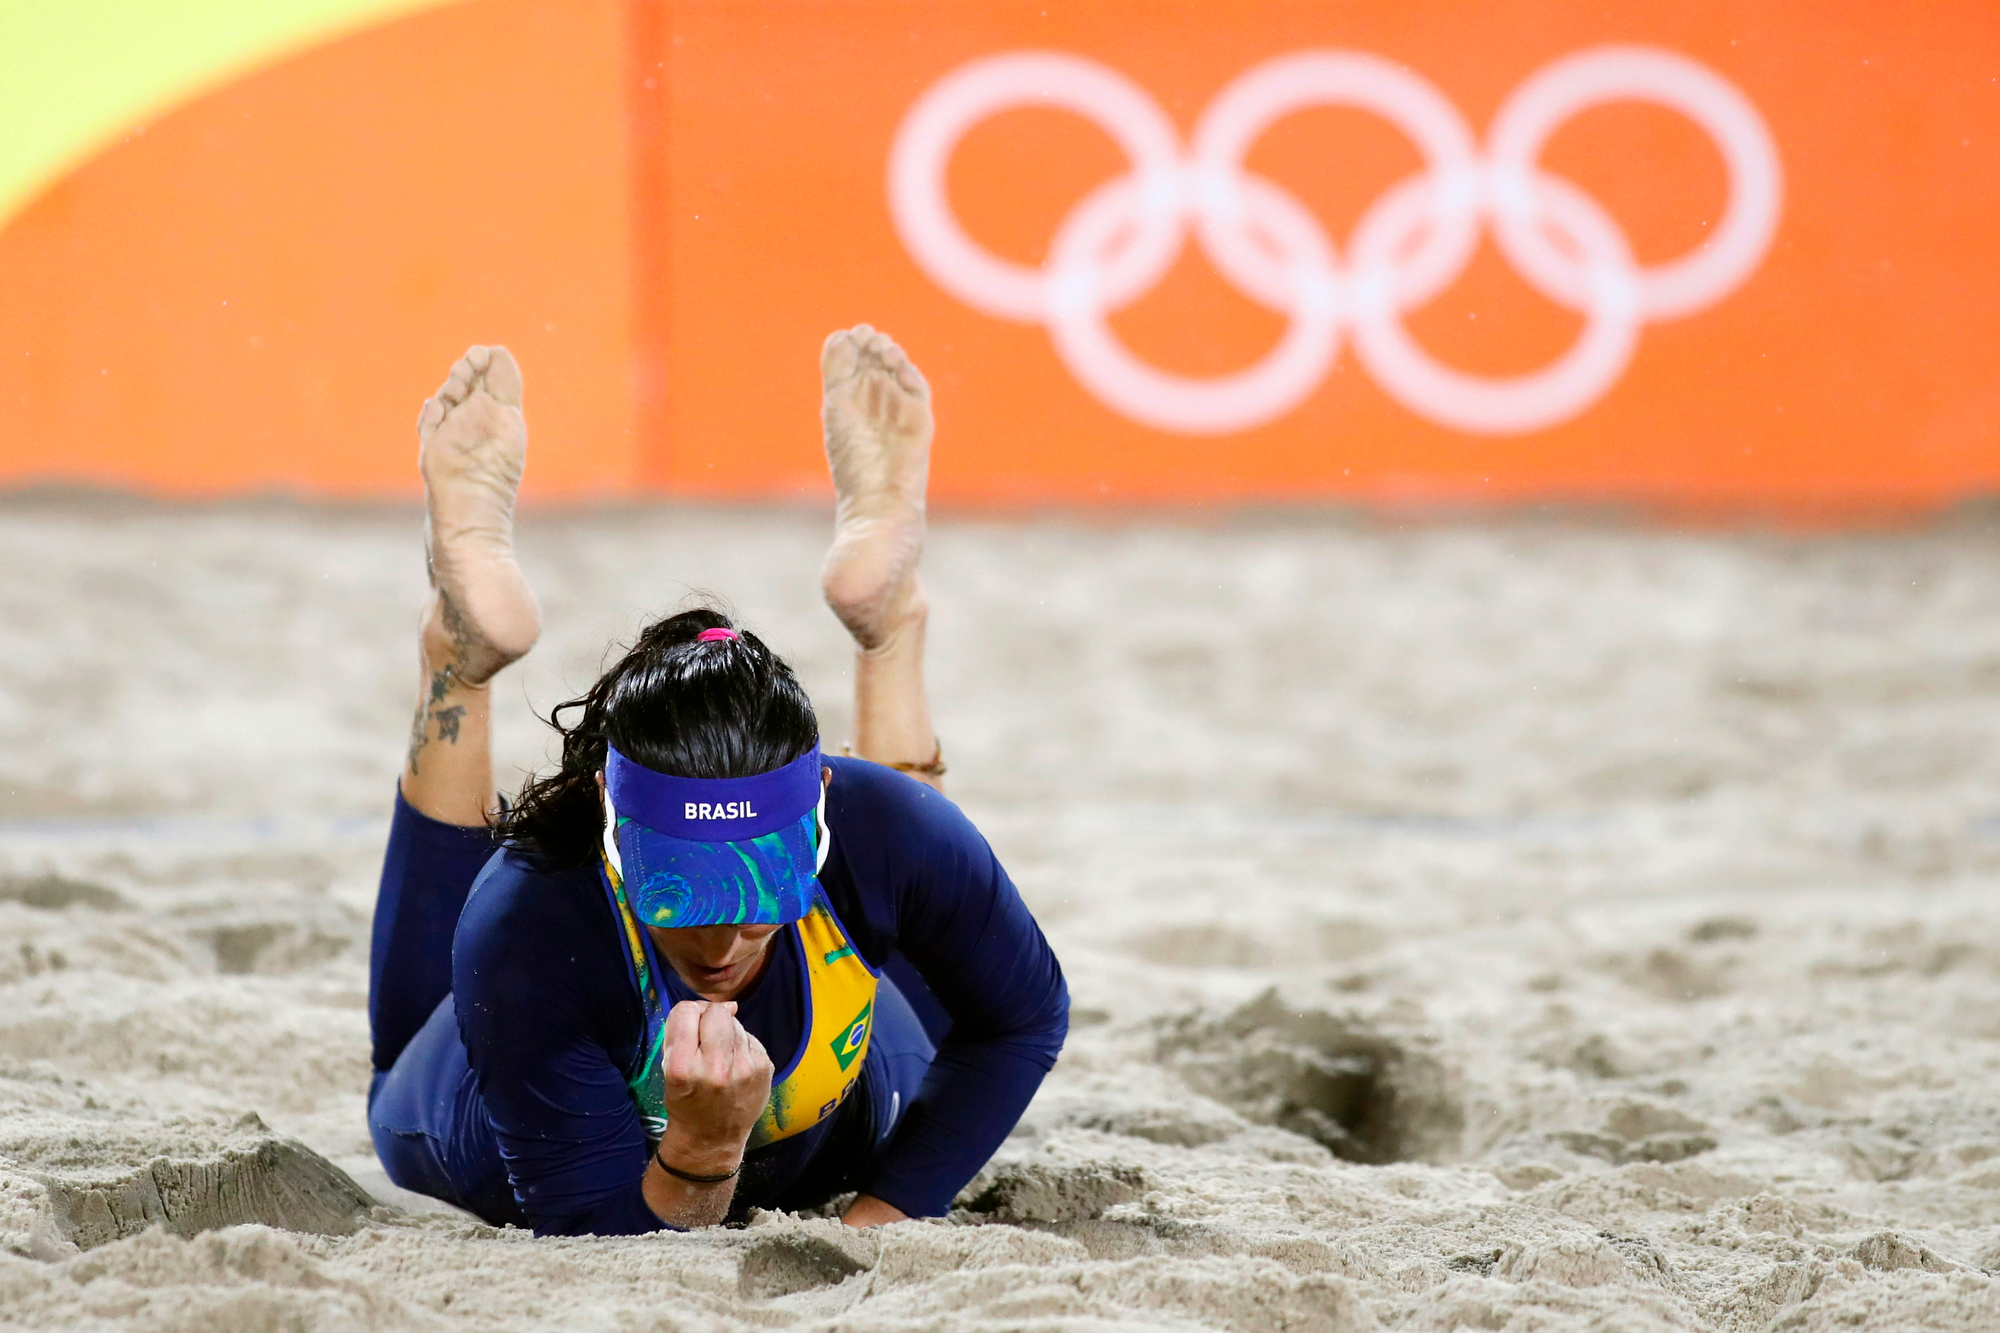 Brazil's Ágatha Bednarczuk lays in the sand after missing a dig against Spain during a Women's Beach Volleyball preliminary match at the 2016 Rio Summer Olympics on Copacabana Beach in Rio de Janeiro, Brazil, on August 10, 2016. Spain defeated Brazil 2-0.